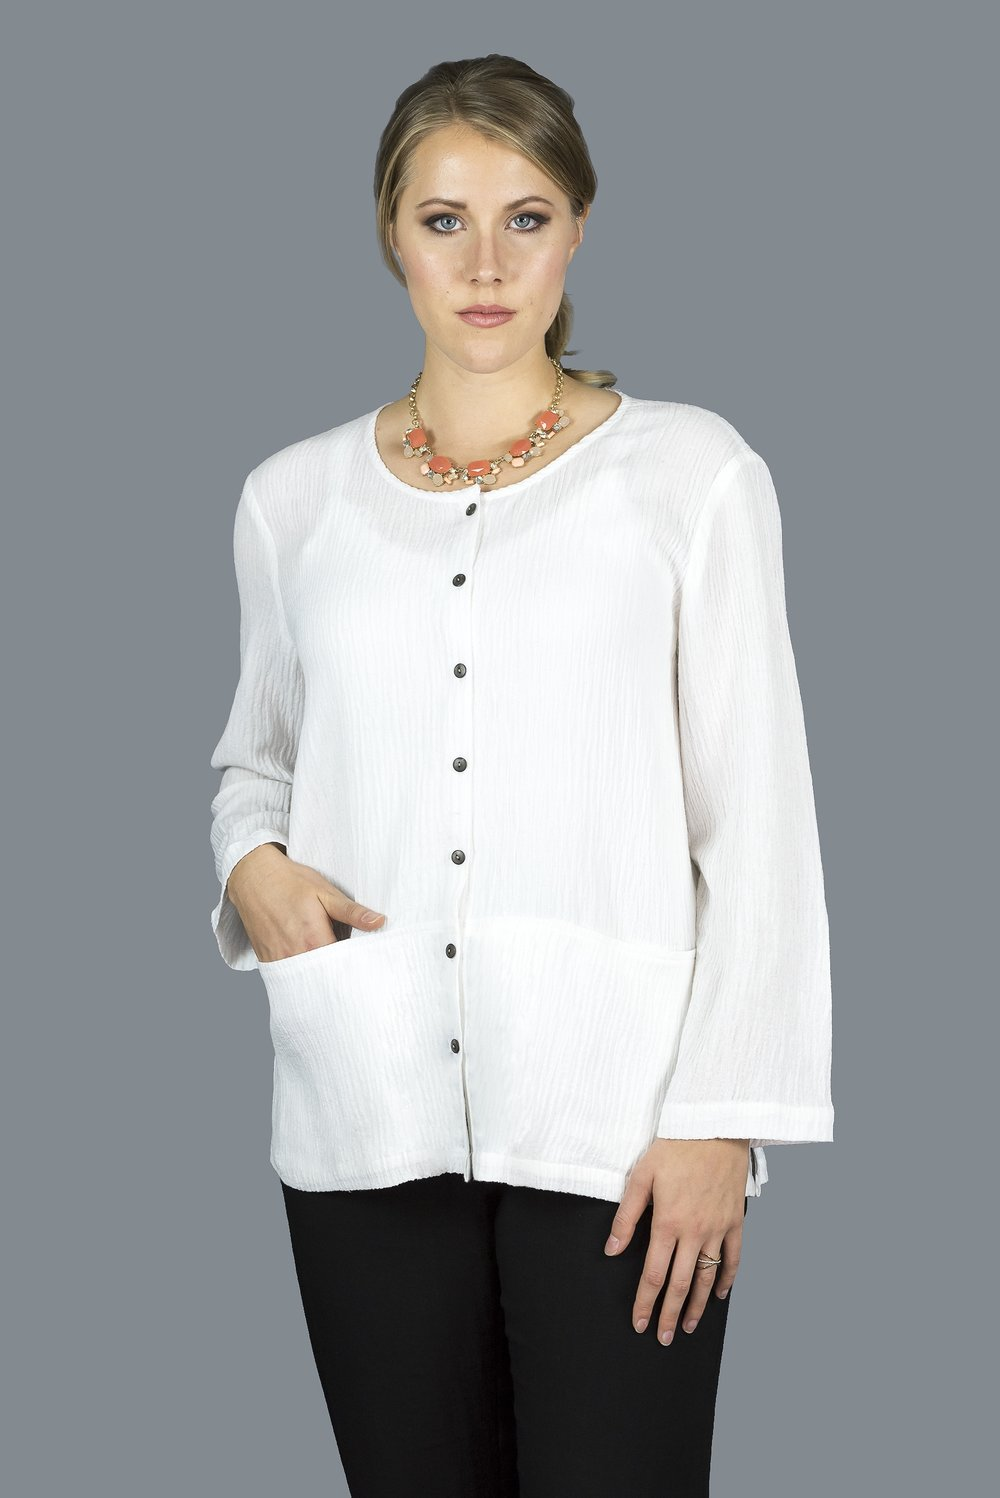 AA215 - Two Pocket Button Up (Textured Linen Only)    TX10 - Textured White